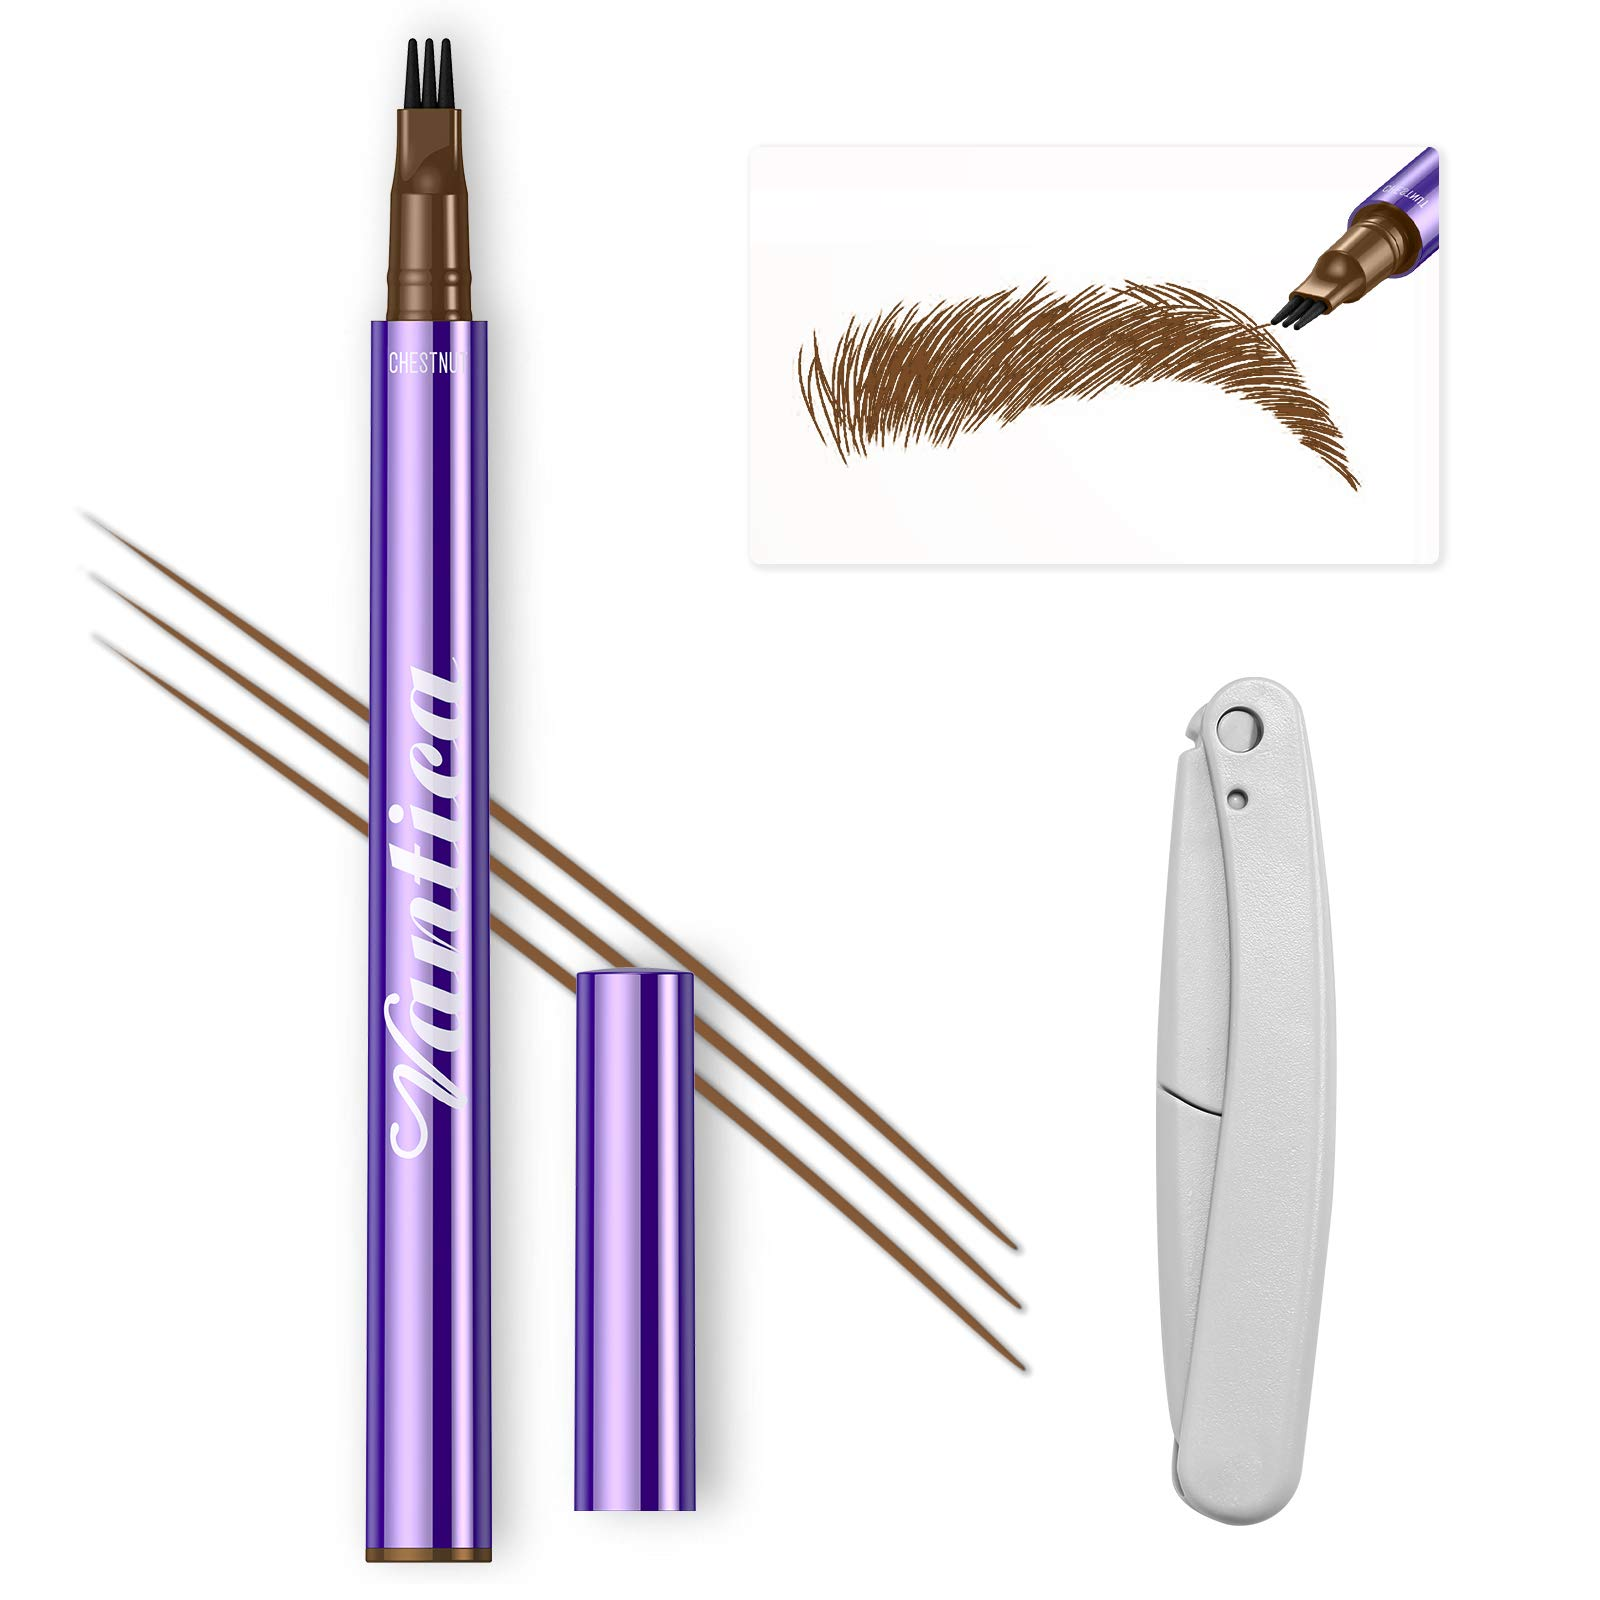 VANTICA Microblading Eyebrow Tattoo Pen – Liquid Microblading Pen Waterproof Eyebrow Pencil